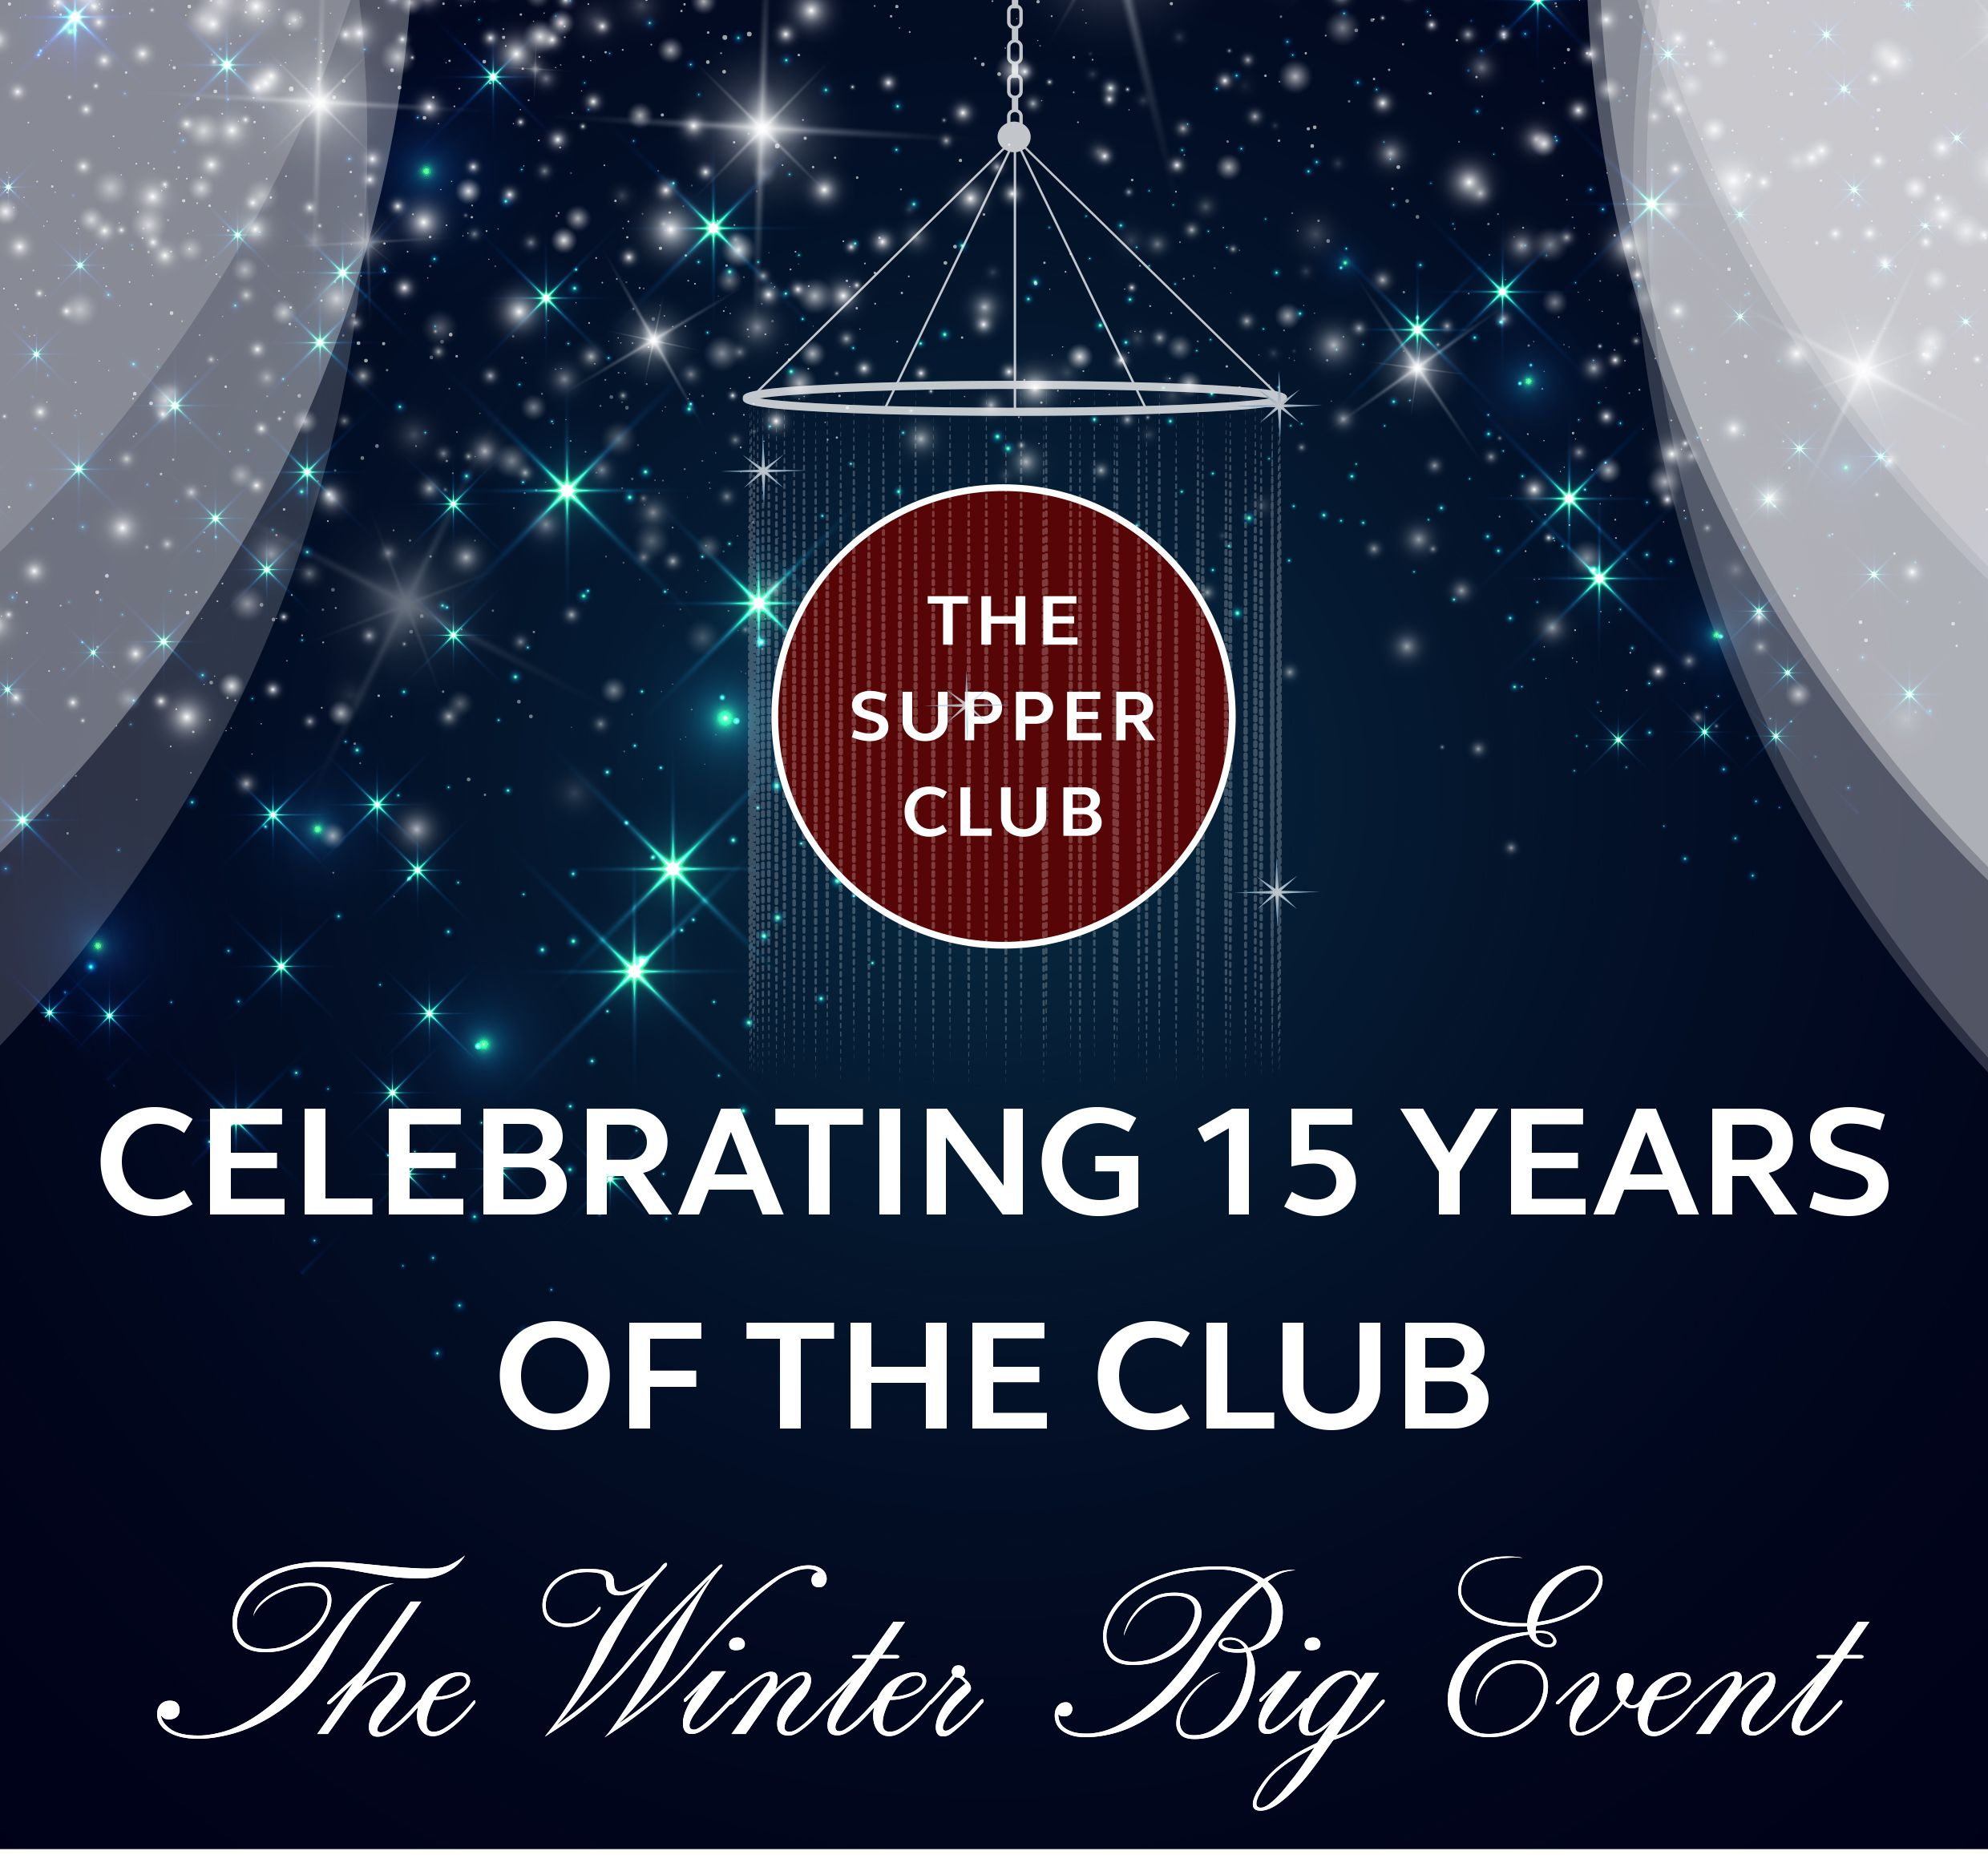 Image of The Supper Club 15 Year Anniversary event